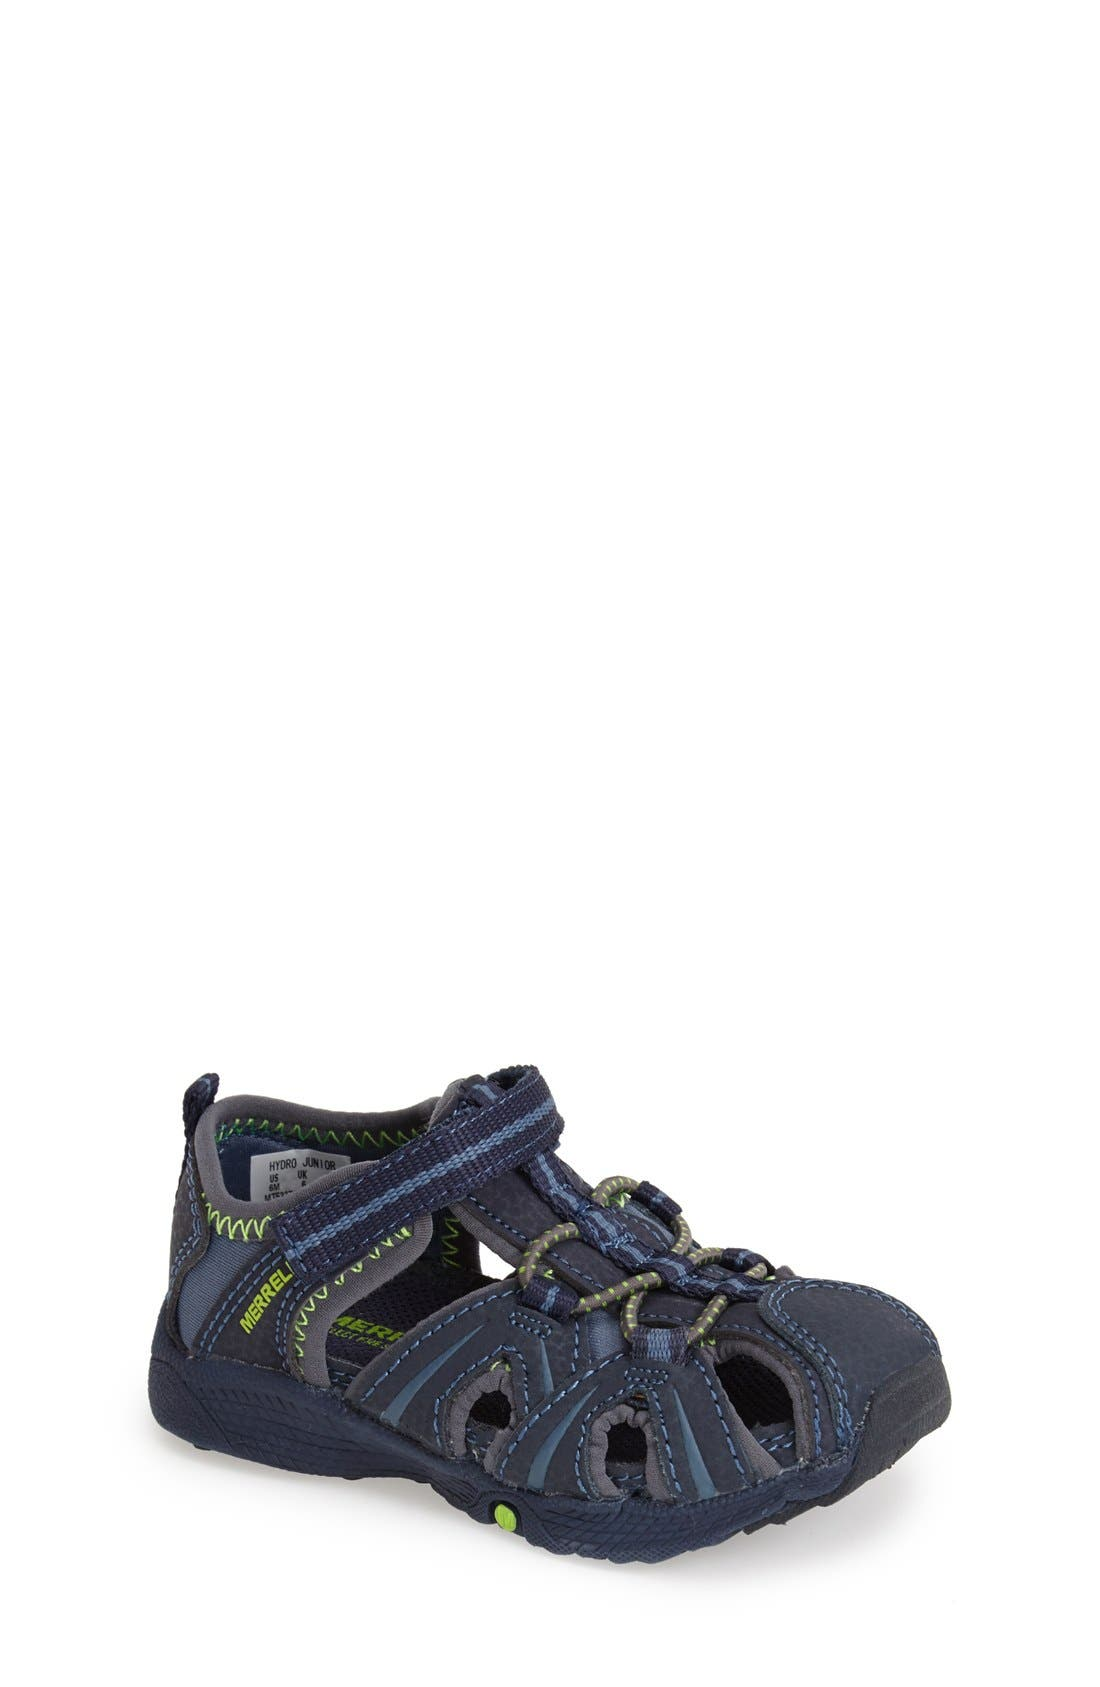 MERRELL,                             'Hydro Junior' M-Select Water Sandal,                             Main thumbnail 1, color,                             NAVY/ GREEN